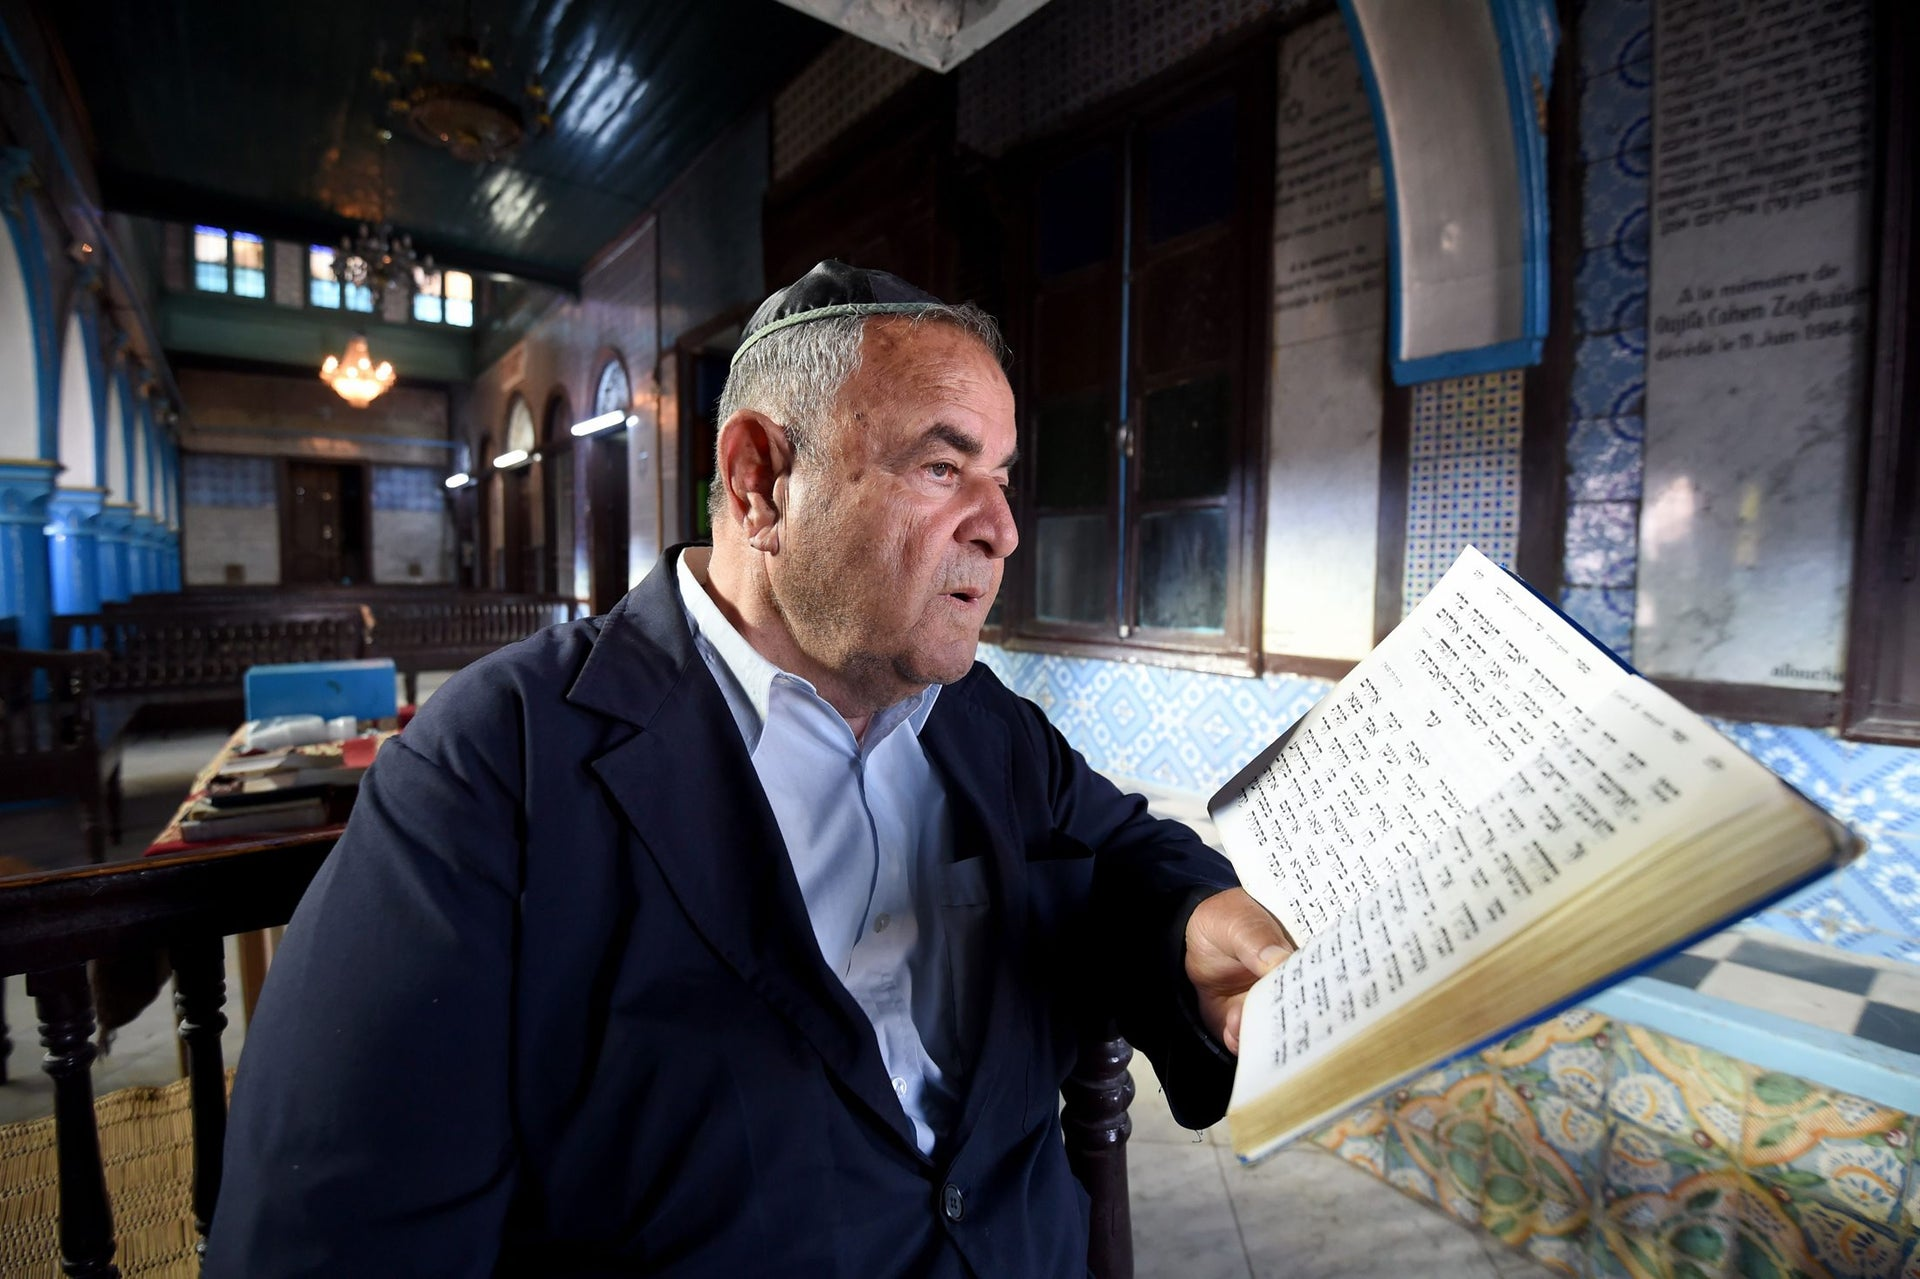 Tunisian Jewish Perez Trabelsi, President of the Jewish community of Djerba reads the Torah, Judaism's most important text, at the Ghriba synagogue on the Tunisian resort island of Djerba one day before the start of a two-day annual pilgrimage, on May 24, 2016.